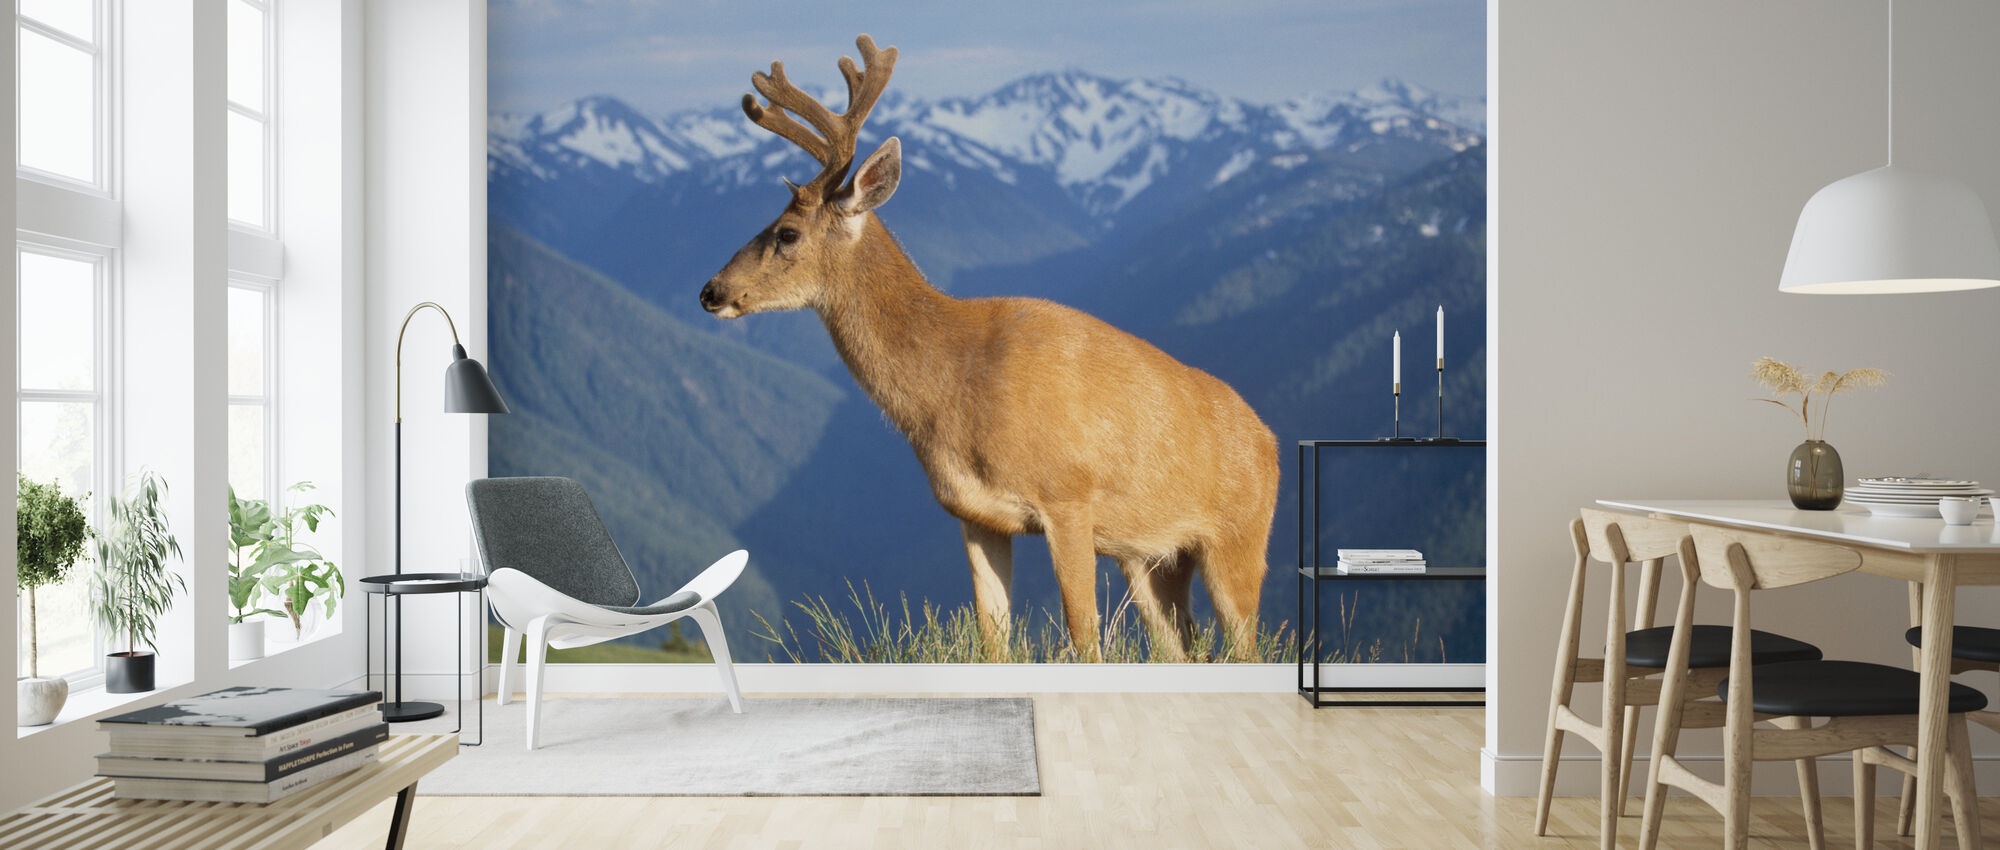 Reindeer and Mountains - Wallpaper - Living Room